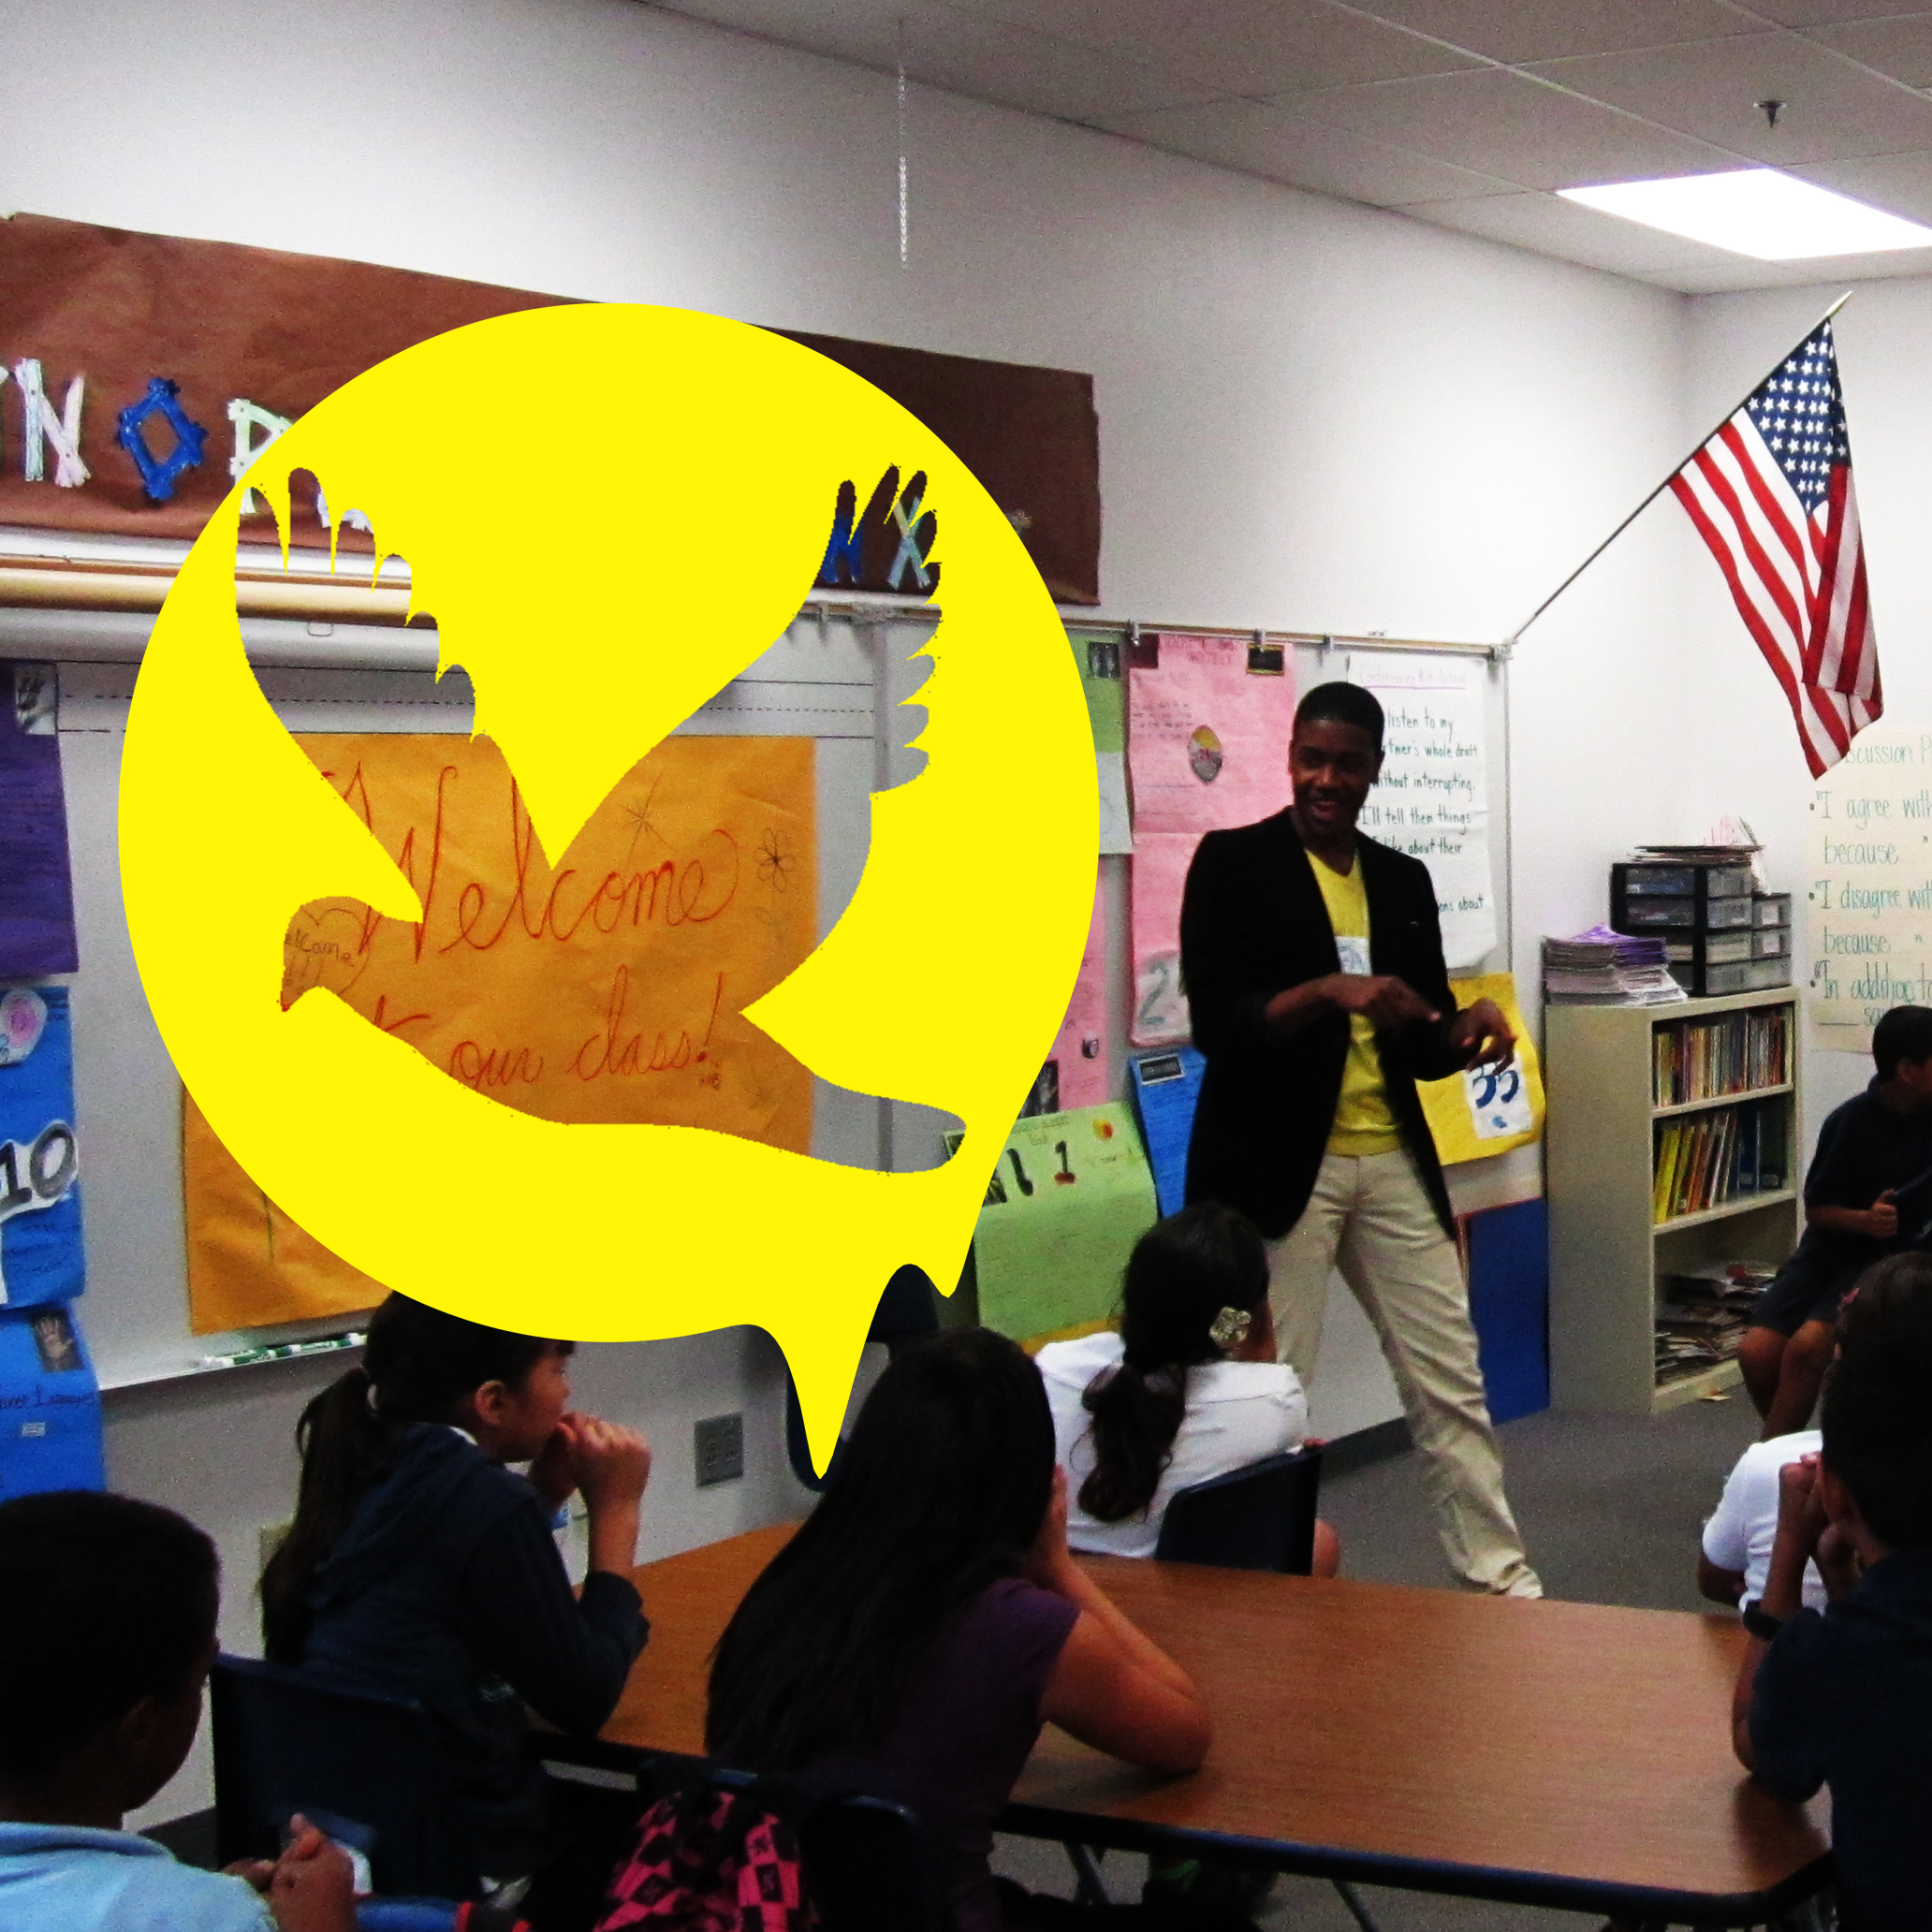 [LIFE]: Career Day at Reynaldo Martinez Elementary School, Las Vegas, NV